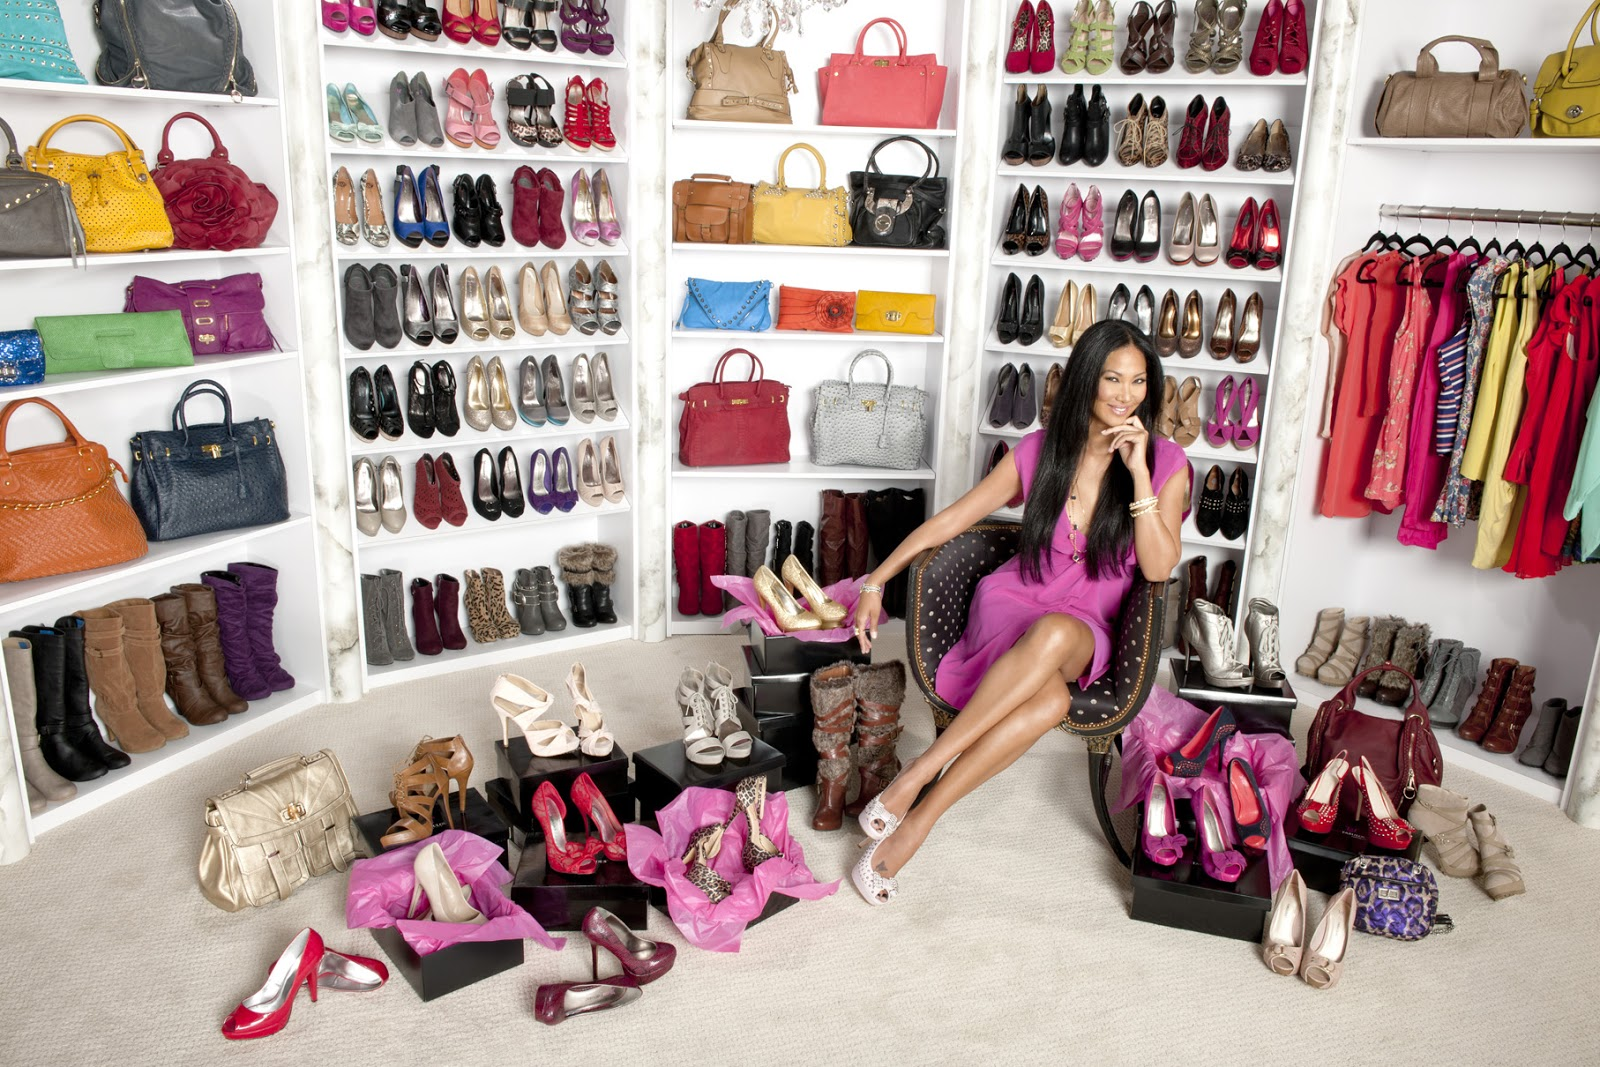 http://4.bp.blogspot.com/-YLUf7RQ0rPk/UWsTLYBbO1I/AAAAAAAA7Dw/rzvxeJwijqU/s1600/kimora-lee-simmons-shoe-and-bag-collection.jpg